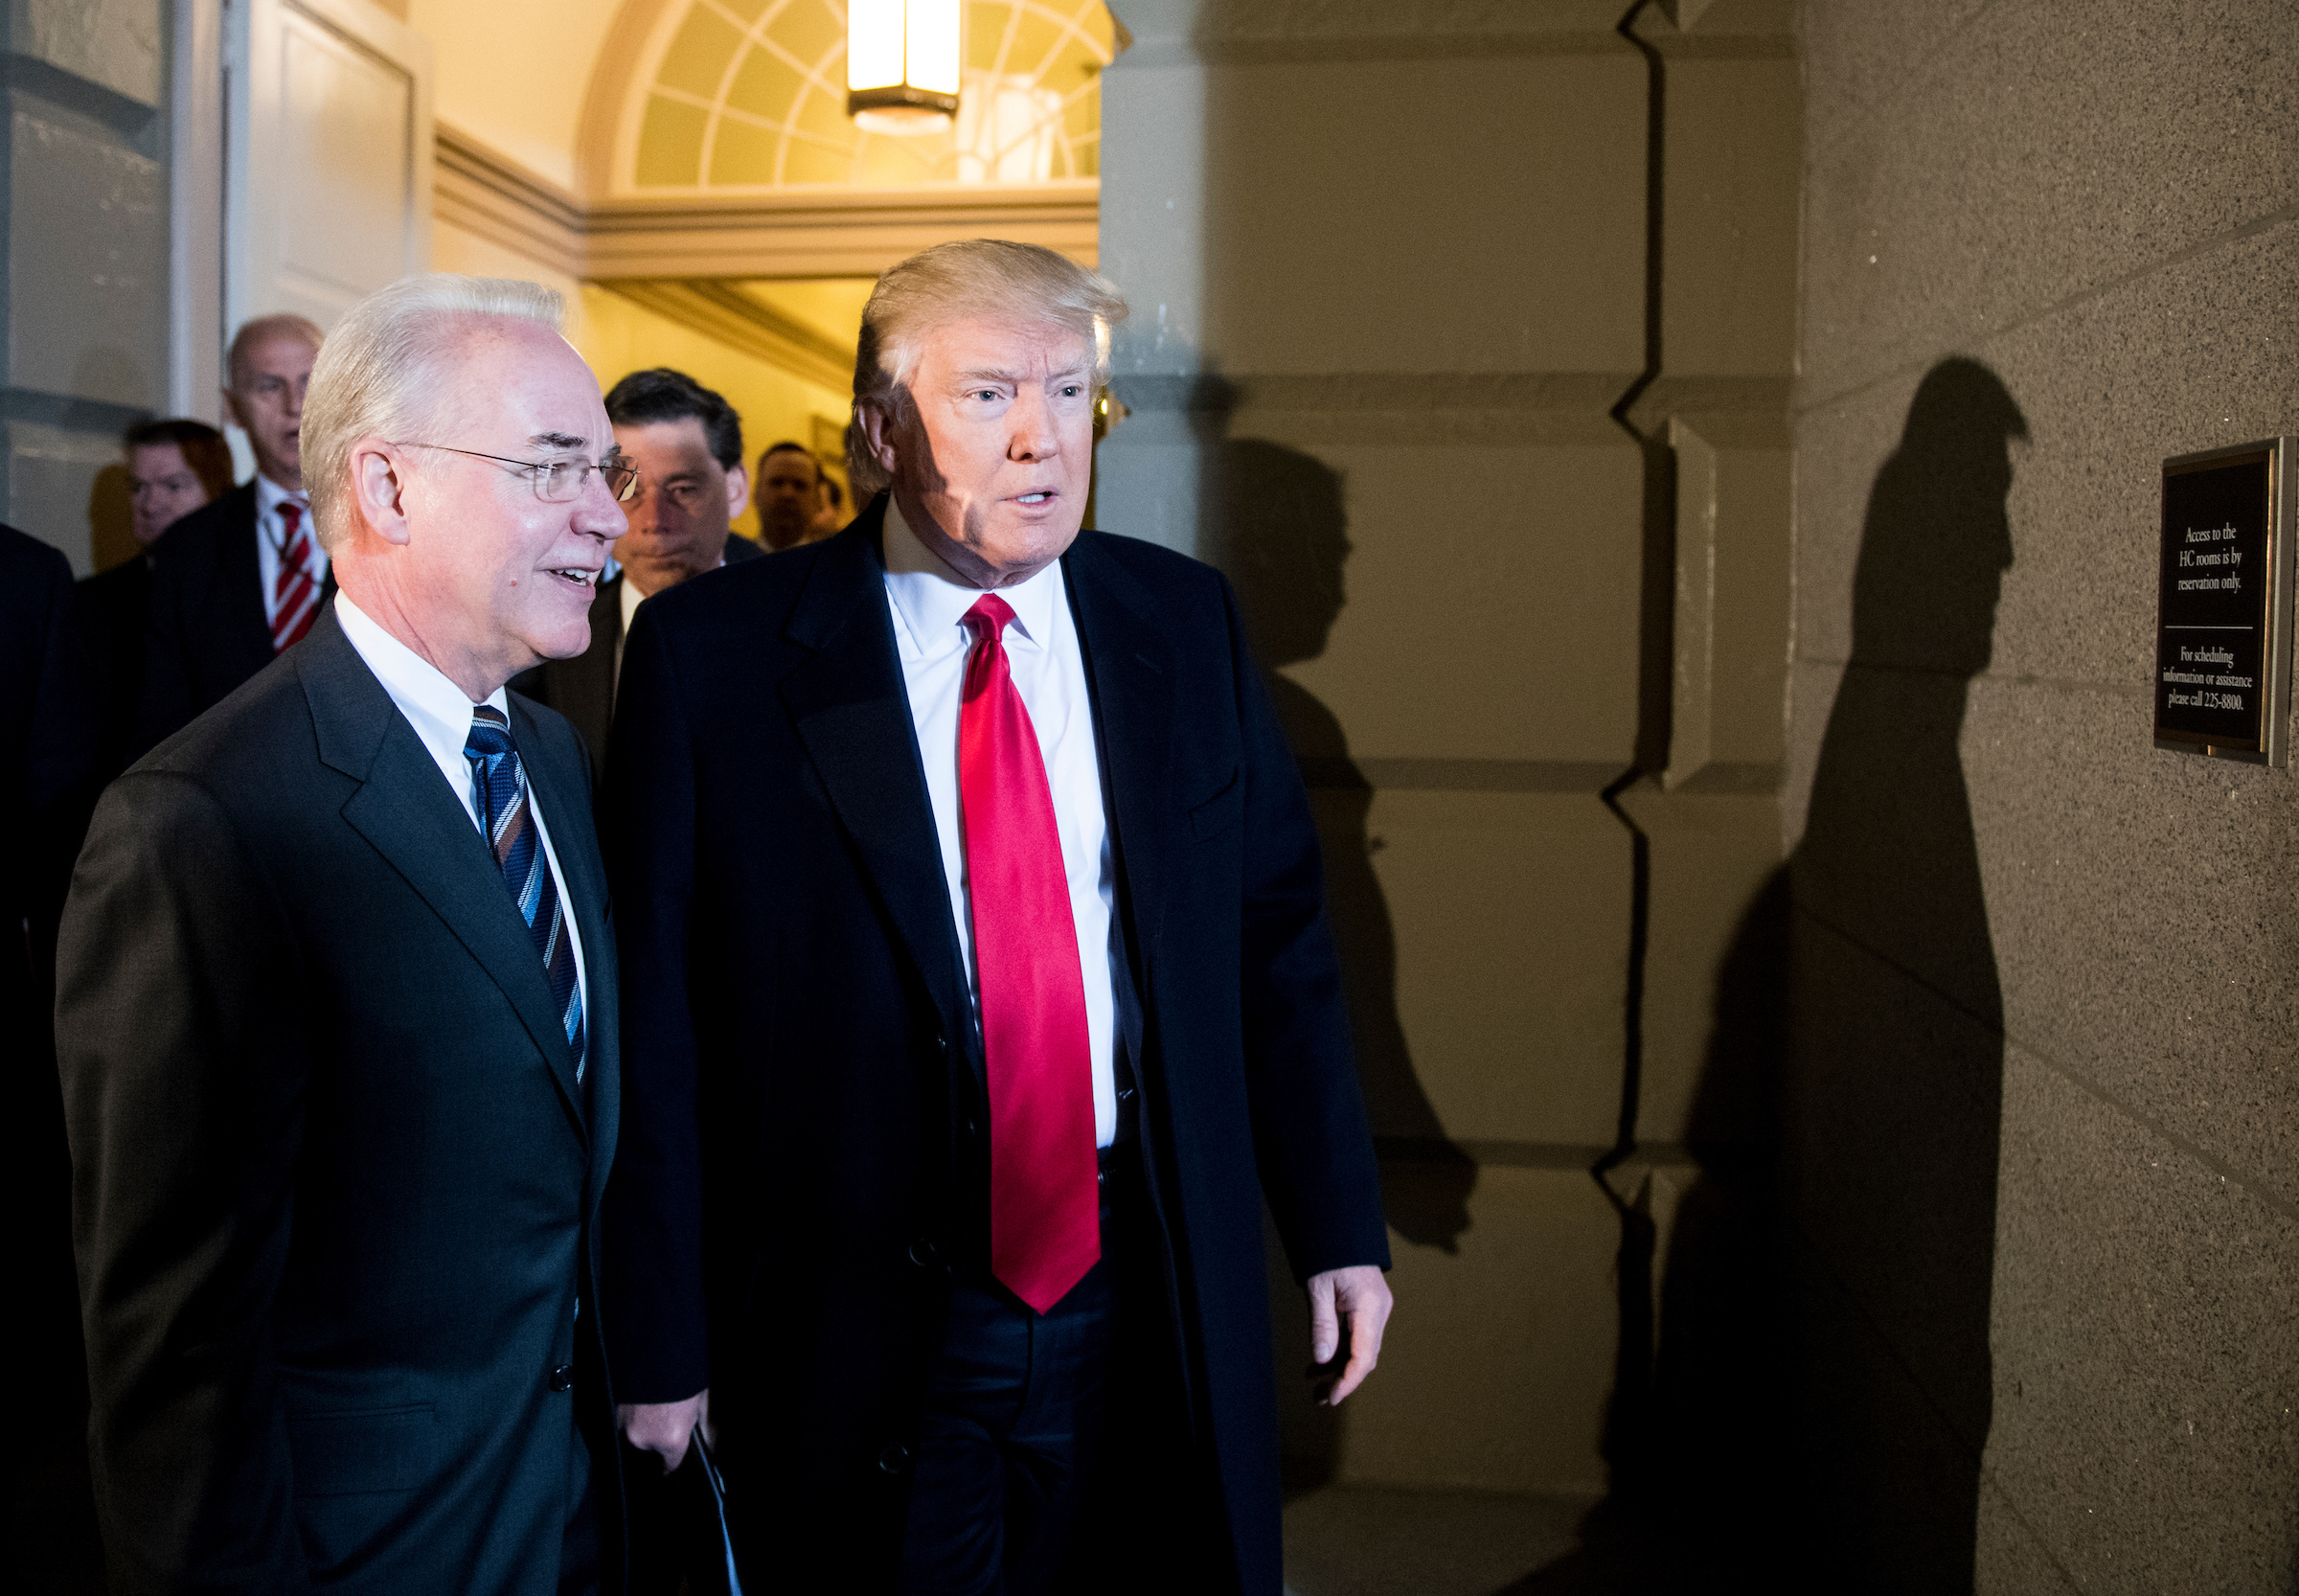 UNITED STATES - MARCH 21: President Donald Trump and Secretary of Health and Human Services Tom Price arrive in the Capitol to meet with the House Republican Conference on Tuesday, March 21, 2017. (Photo By Bill Clark/CQ Roll Call)